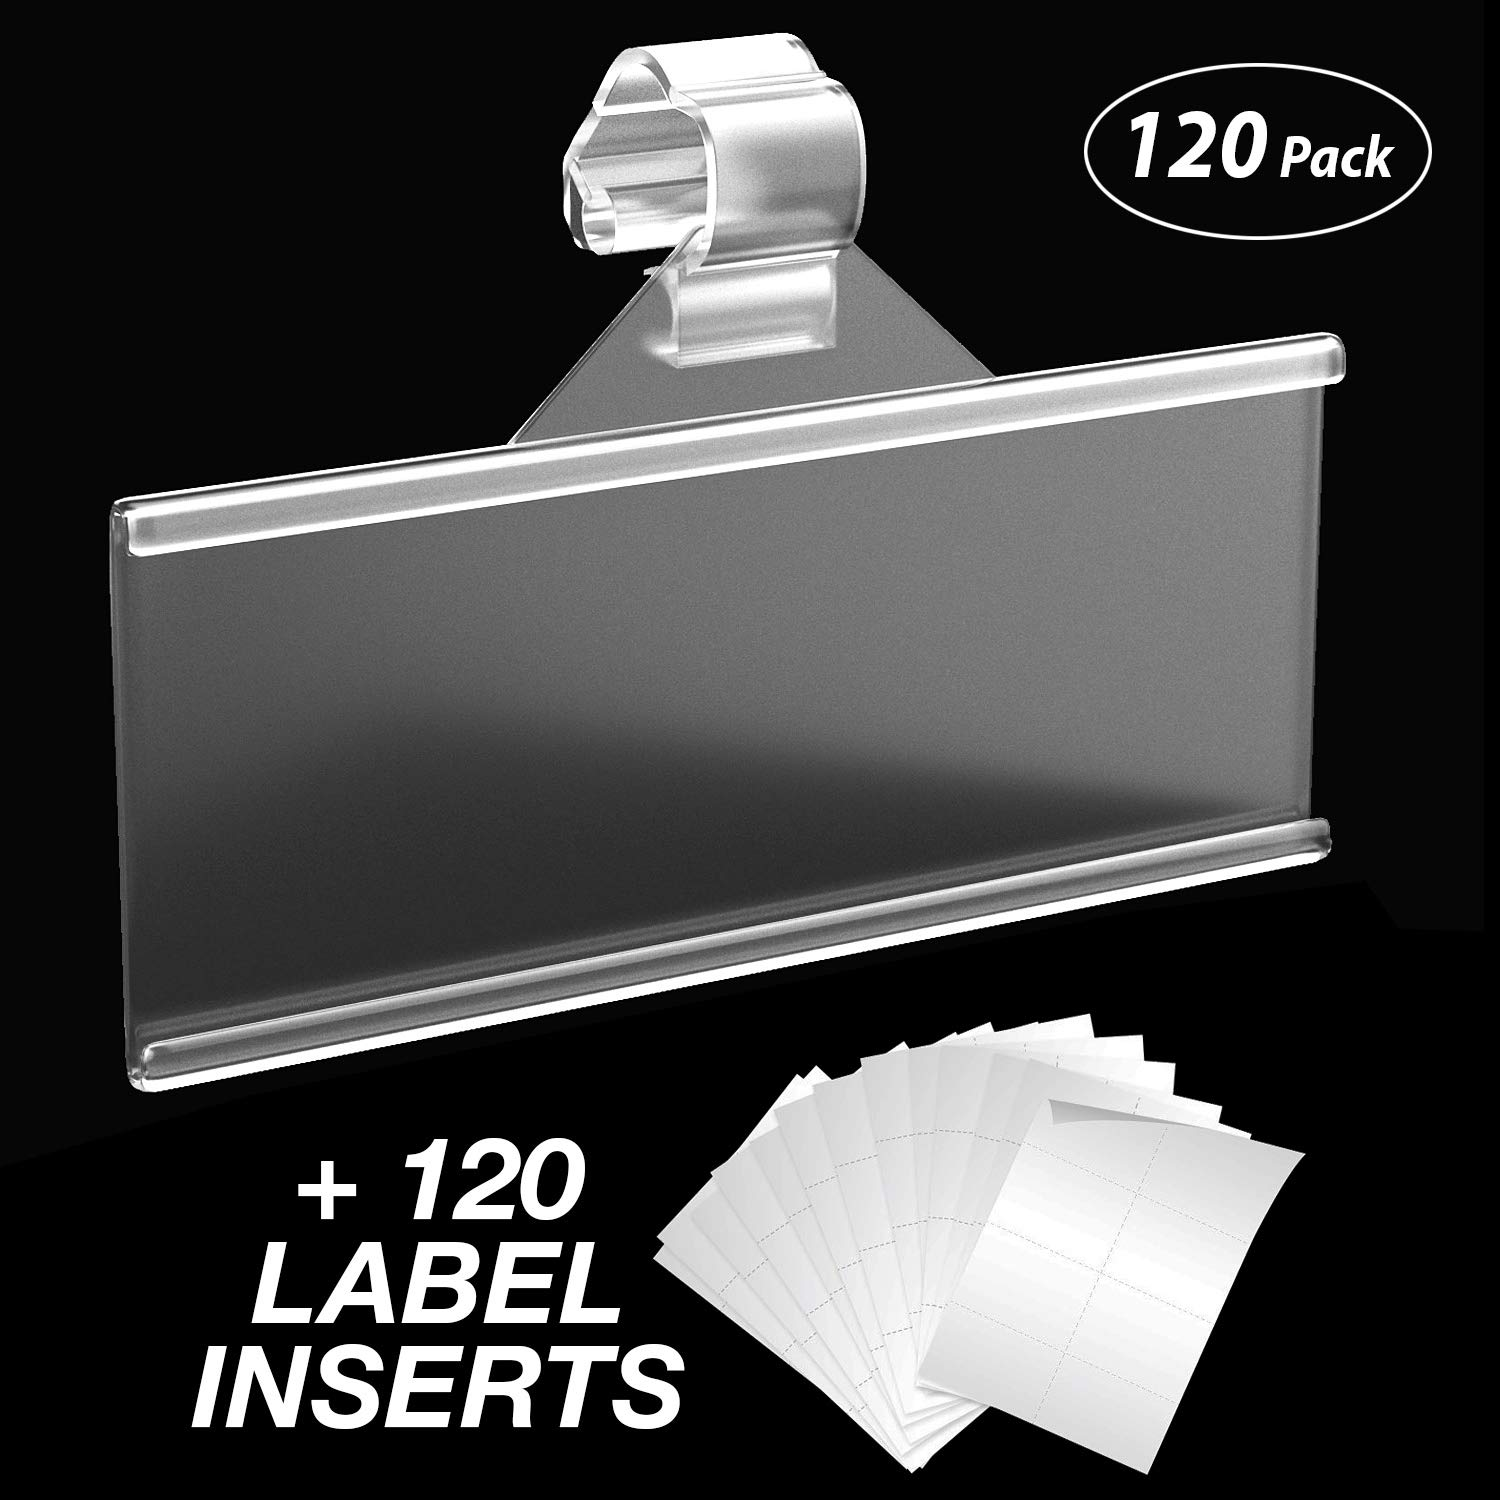 Label Holder 120 Count | Easy Clip Plastic Wire Shelf Labels | Strong Snap Lock Wire Shelving Shelf Lock Clips | Includes 120 Price Labels Ready for Print